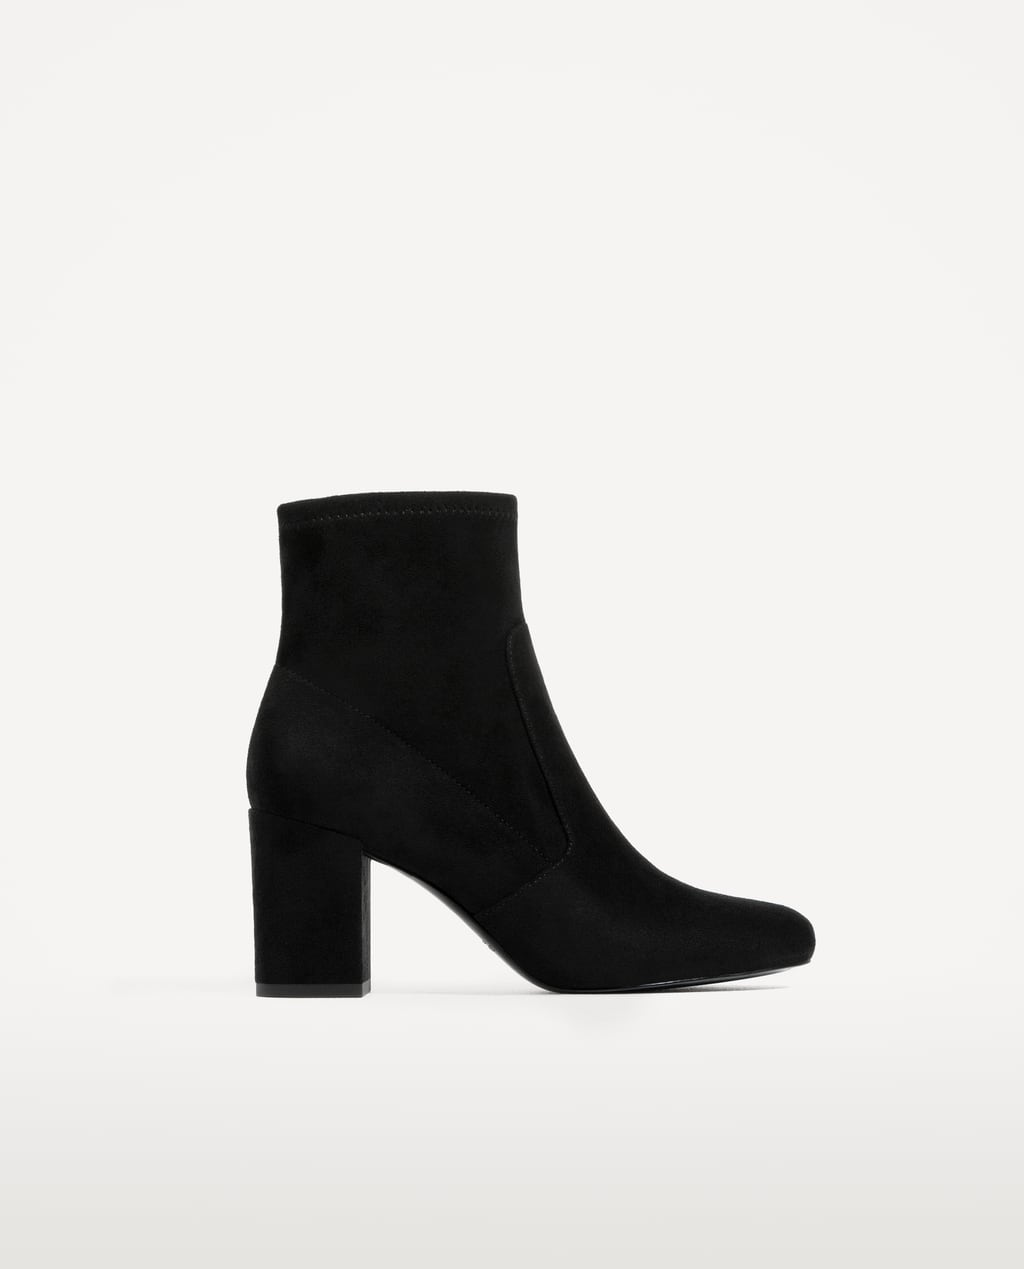 ELASTIC HIGH HEEL ANKLE BOOTS - SHOES-WOMAN-SALE | ZARA United States